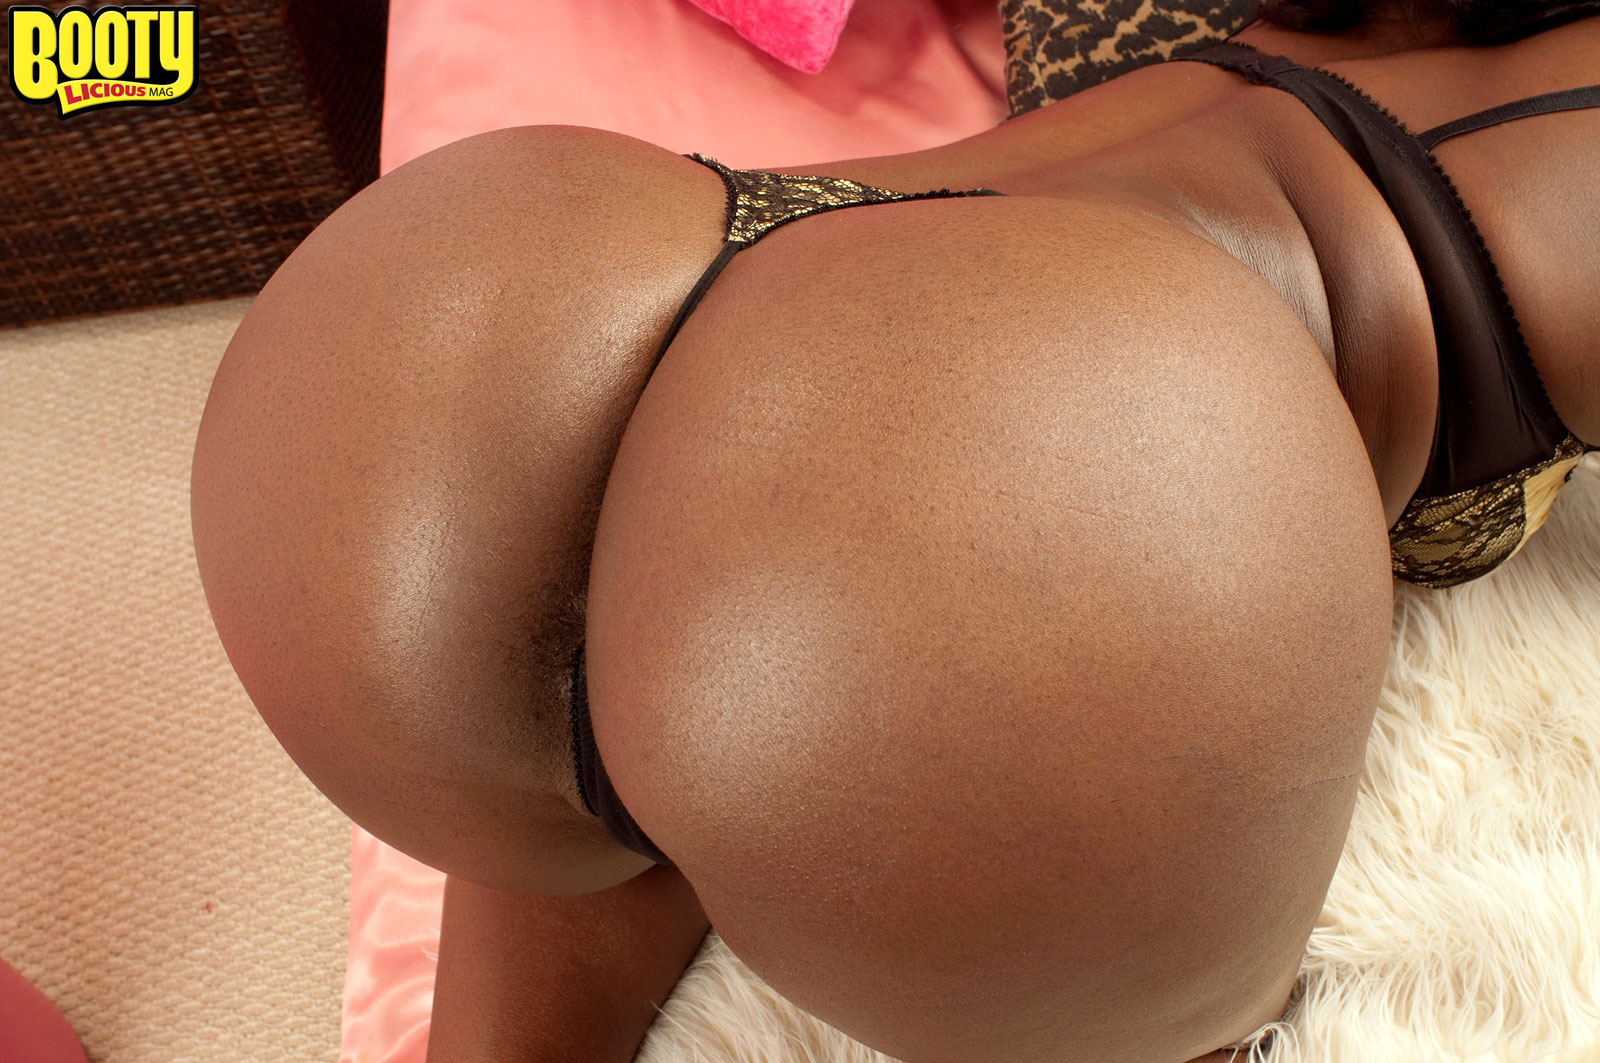 Free Porn Samples Of Bootylicious Mag - Best Big Butts -9152